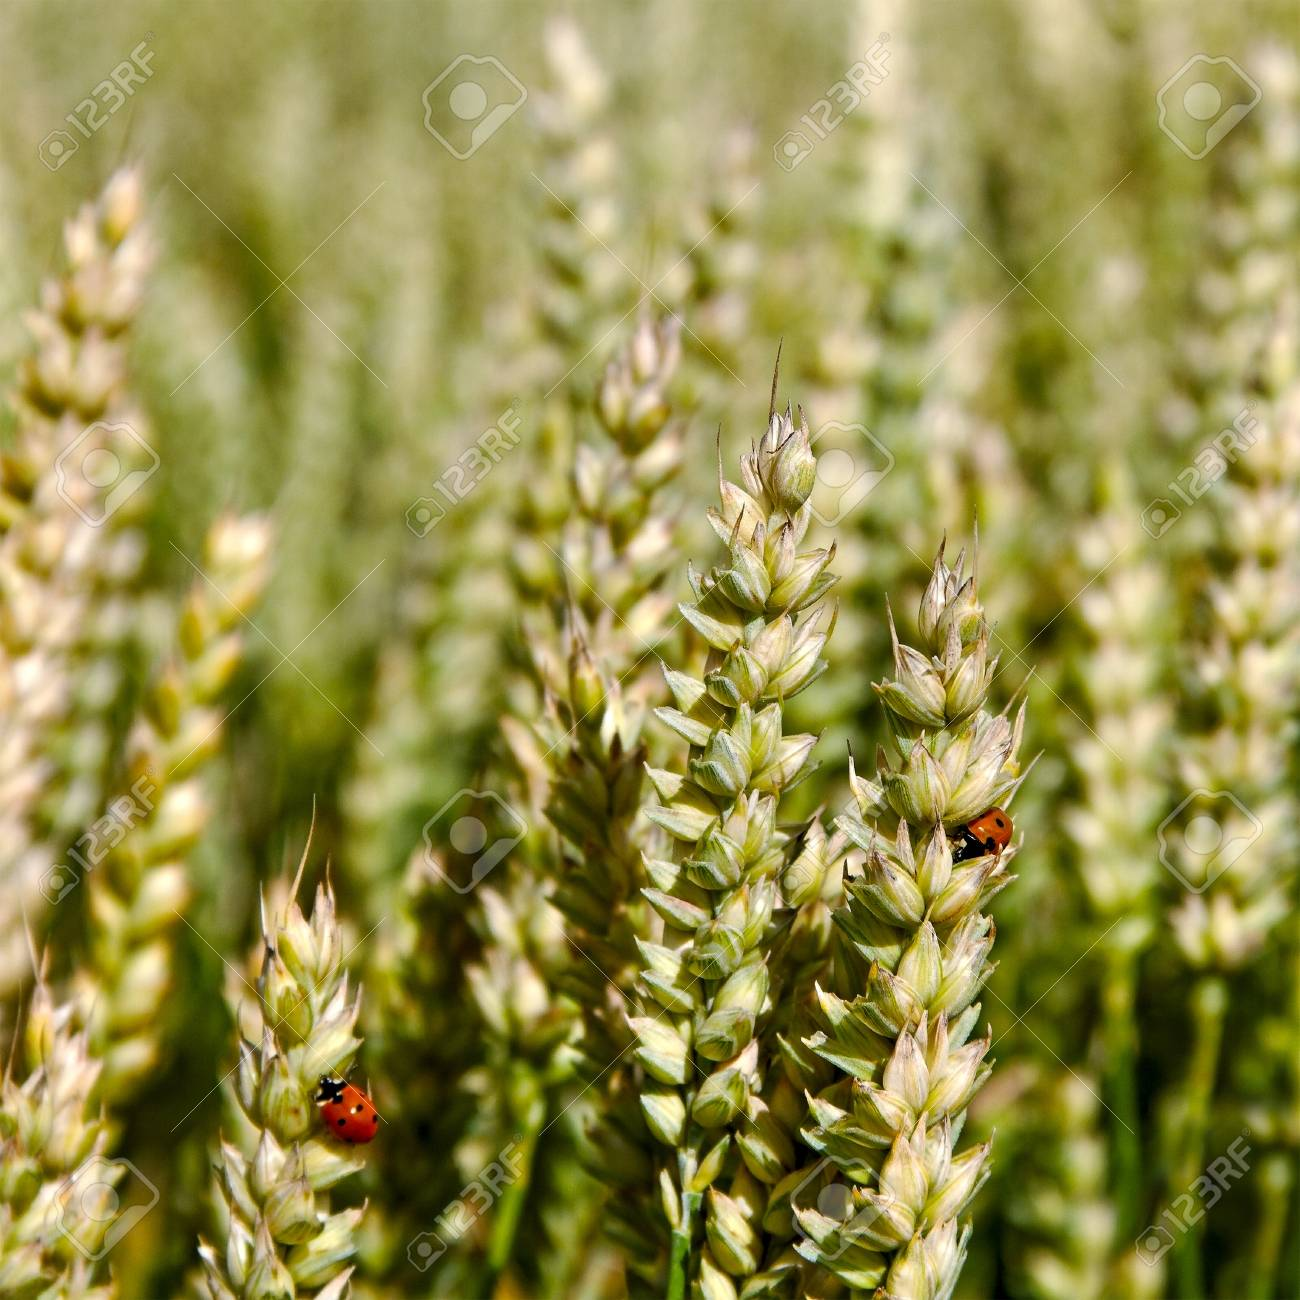 Cultivated land with growing wheat in a summer day Stock Photo - 18344344